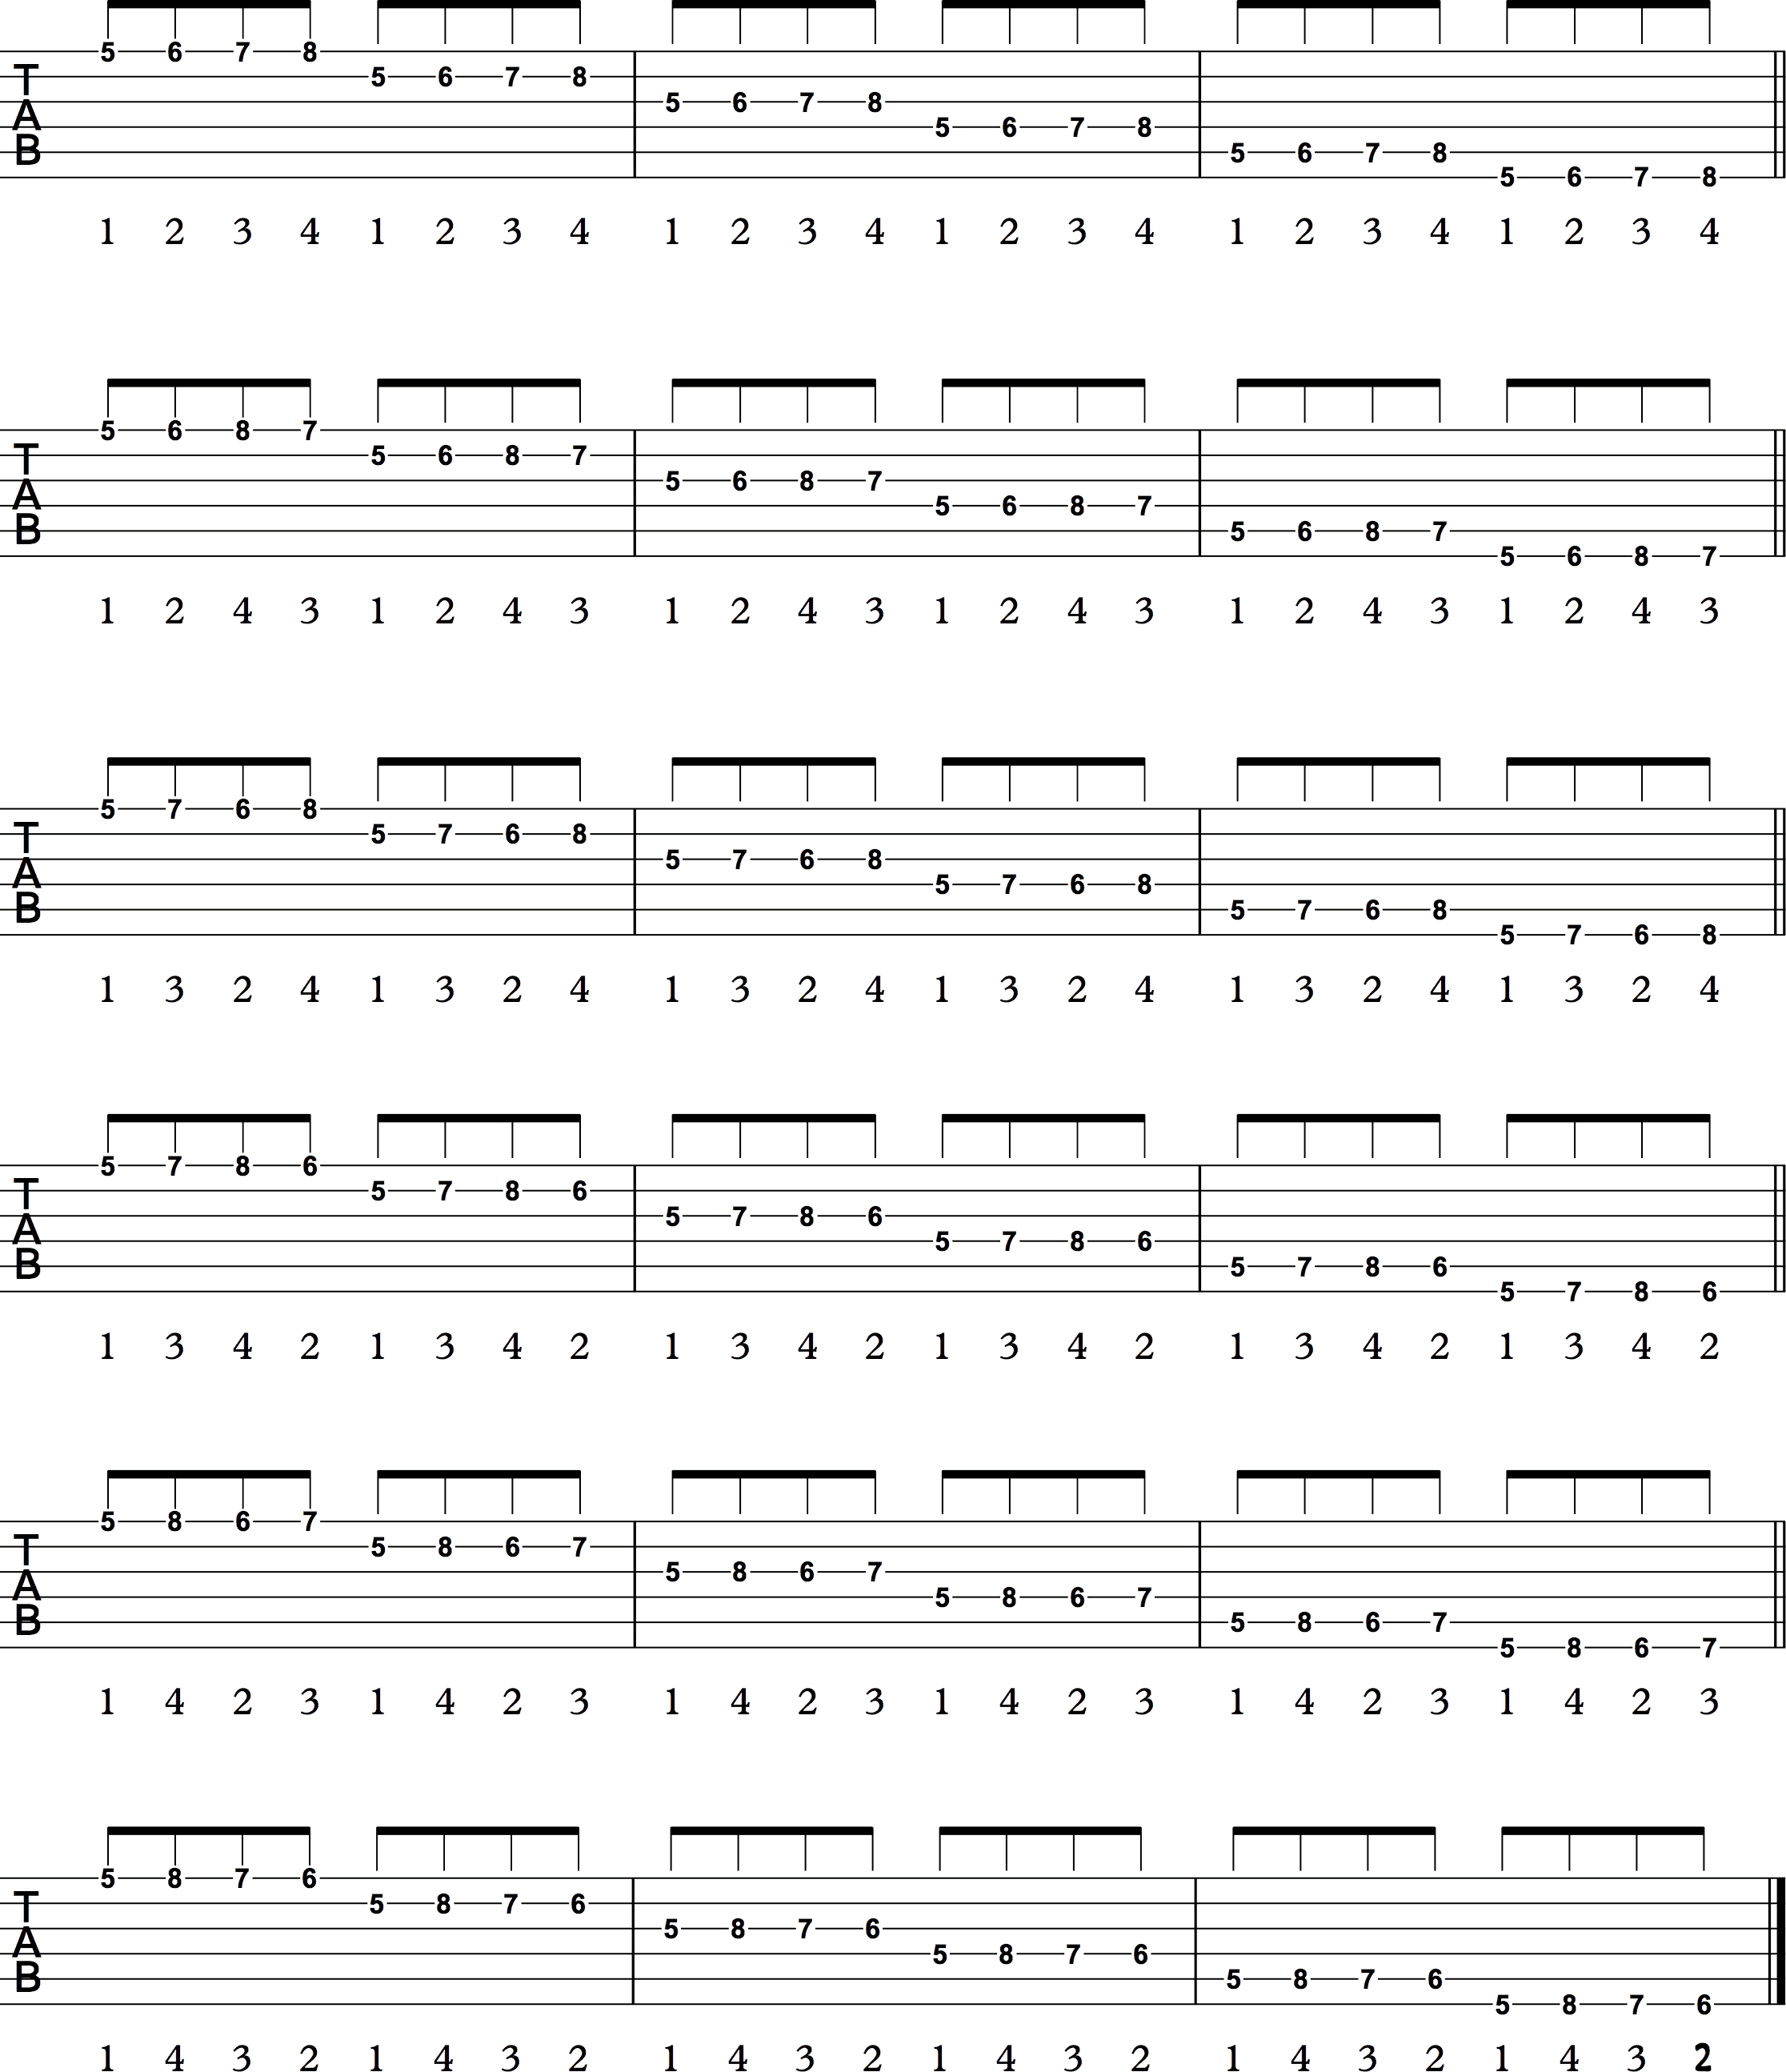 Guitar Exercises - Sheet Music